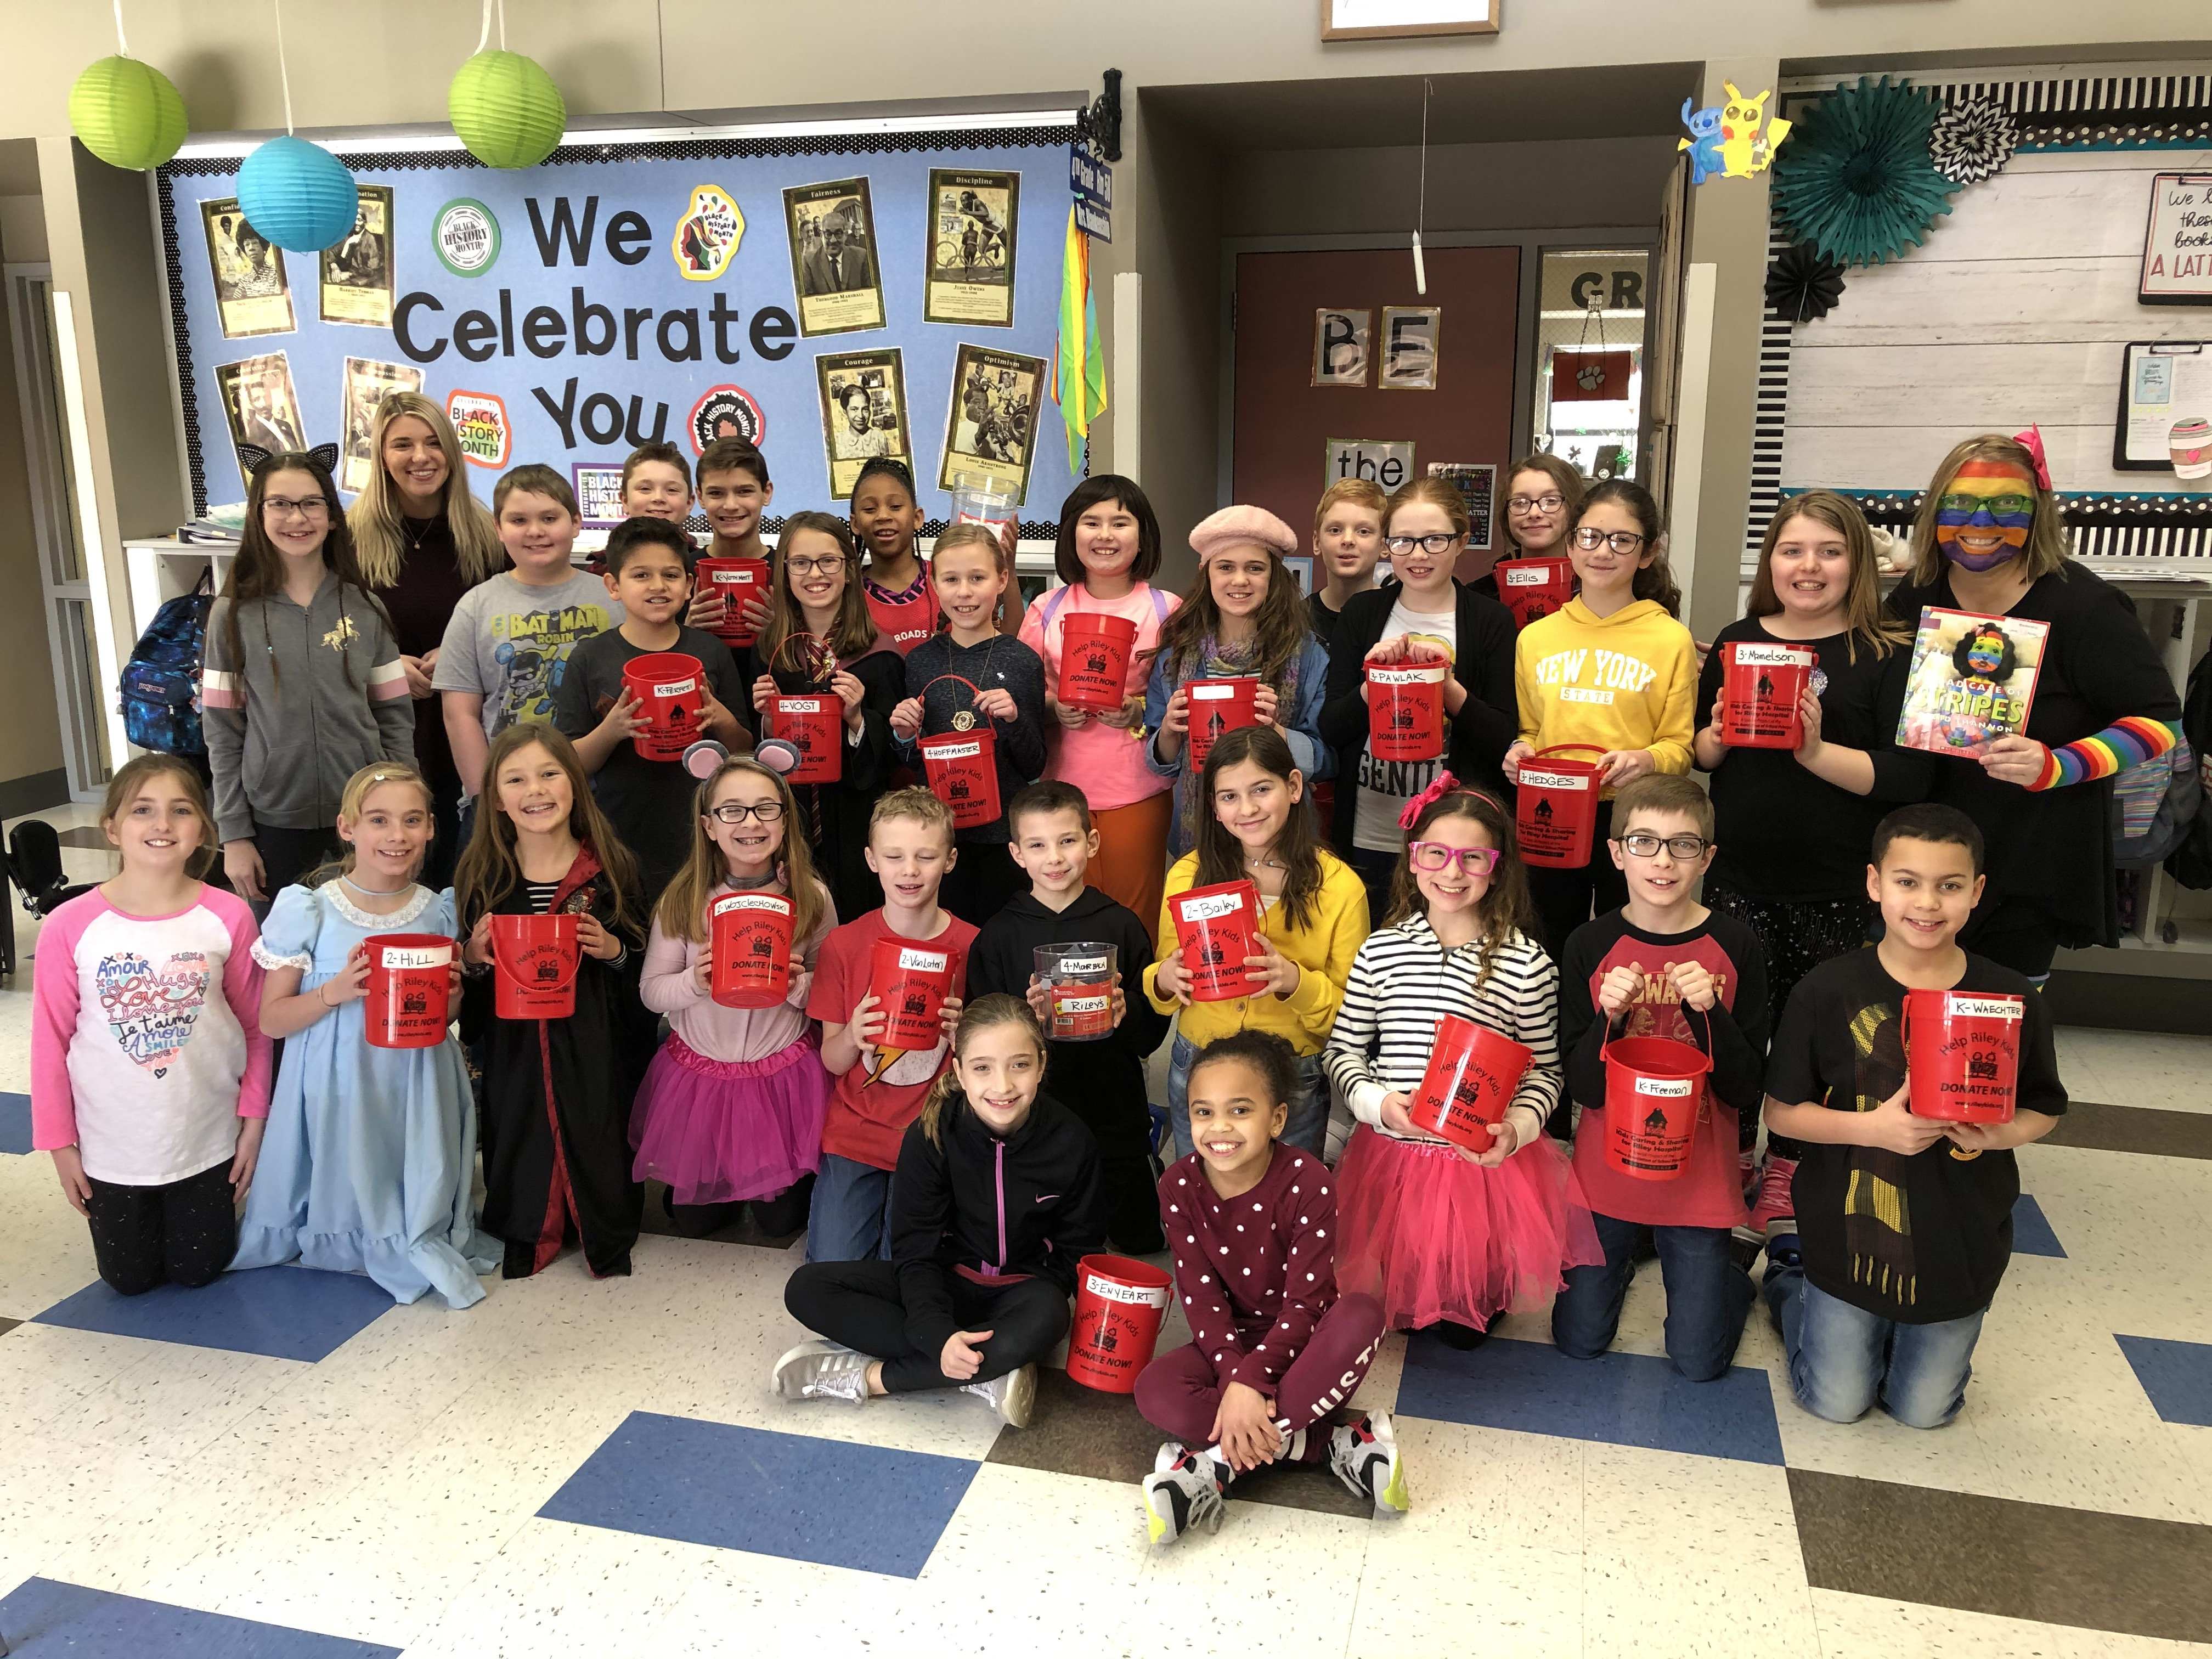 As a Kids Caring and Sharing School, Kolling Elementary Student Council hosted Spirit Week to raise funds for Riley Children's Hospital.